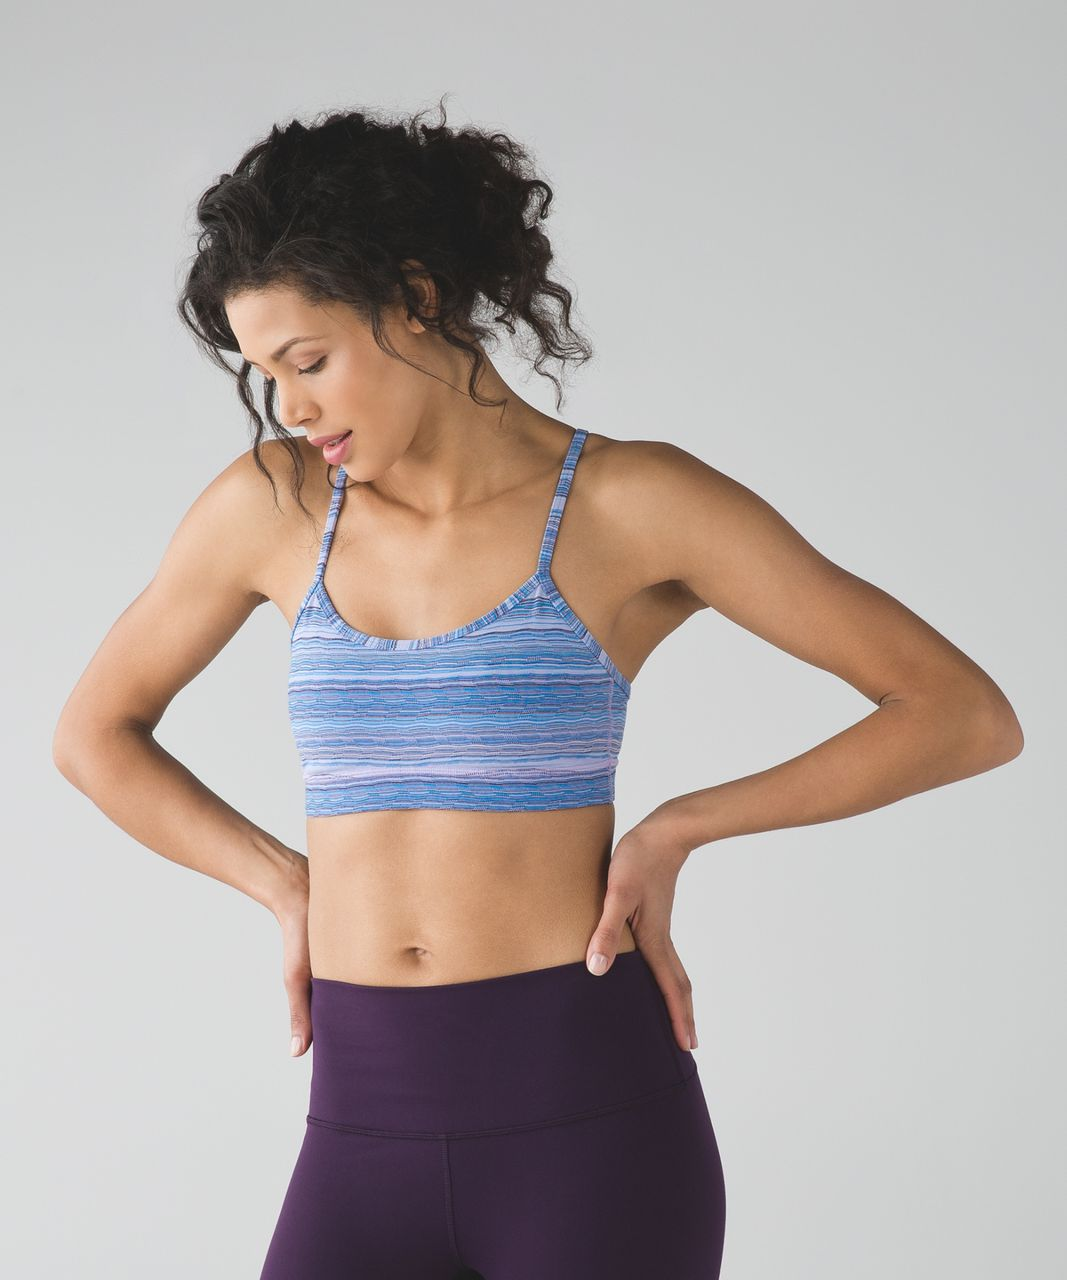 Lululemon Flow Y Bra IV - Wave Twist Lilac Caspian Blue